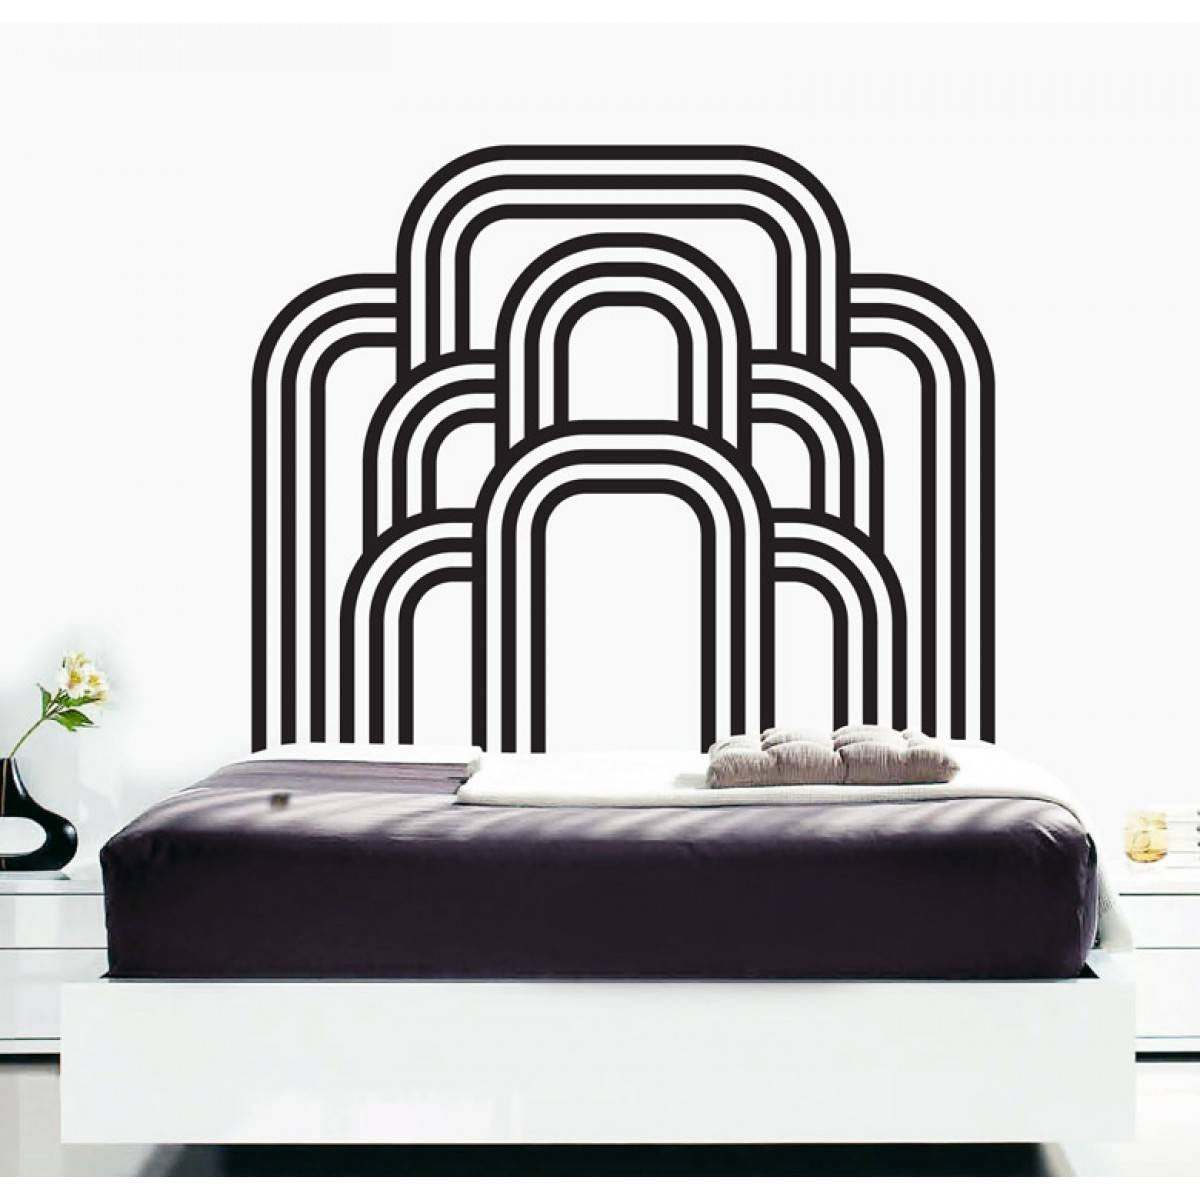 Wall Decals – Thewonderwalls® | Bedroom Art Deco Wall Stickers Intended For Most Current Art Deco Wall Decals (View 9 of 20)